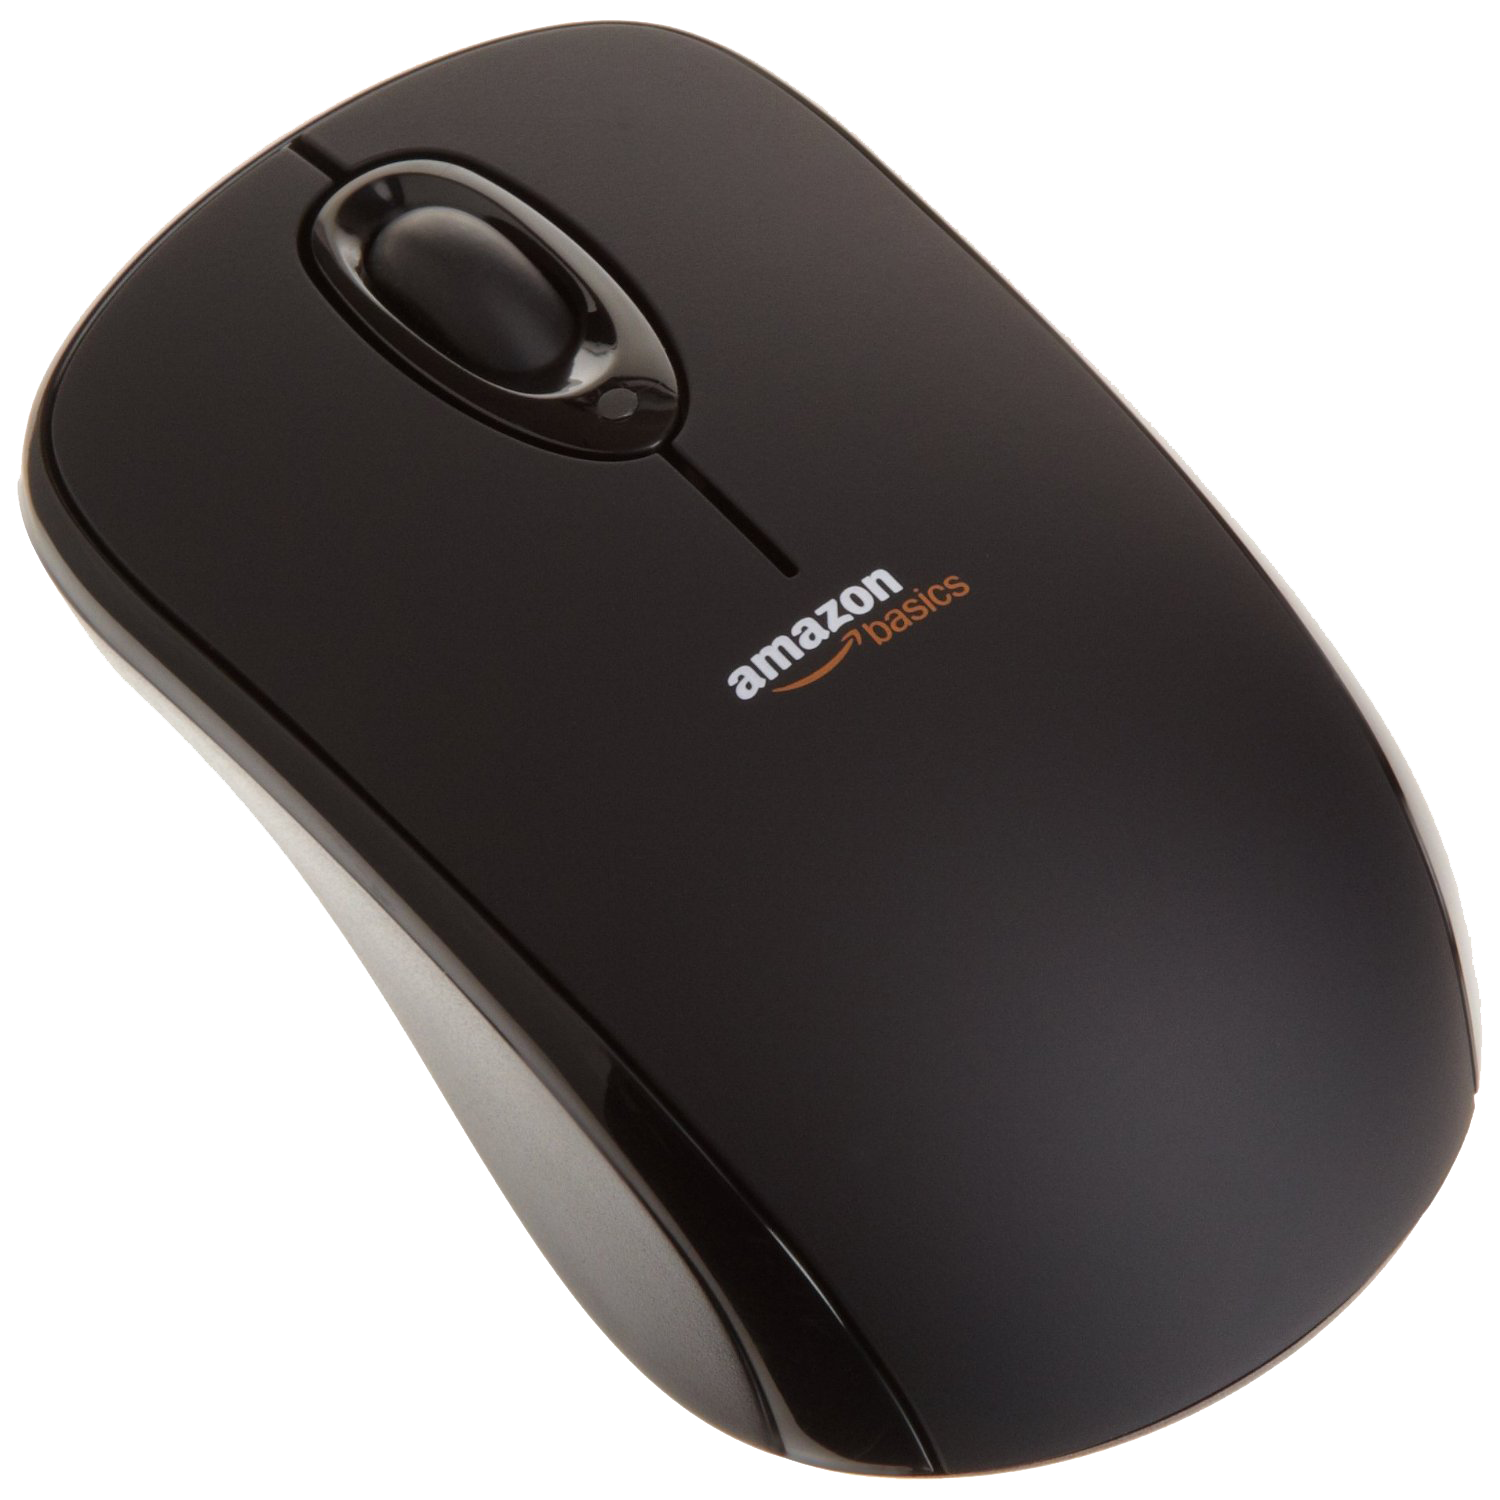 Computer mouse png. Images transparent free download